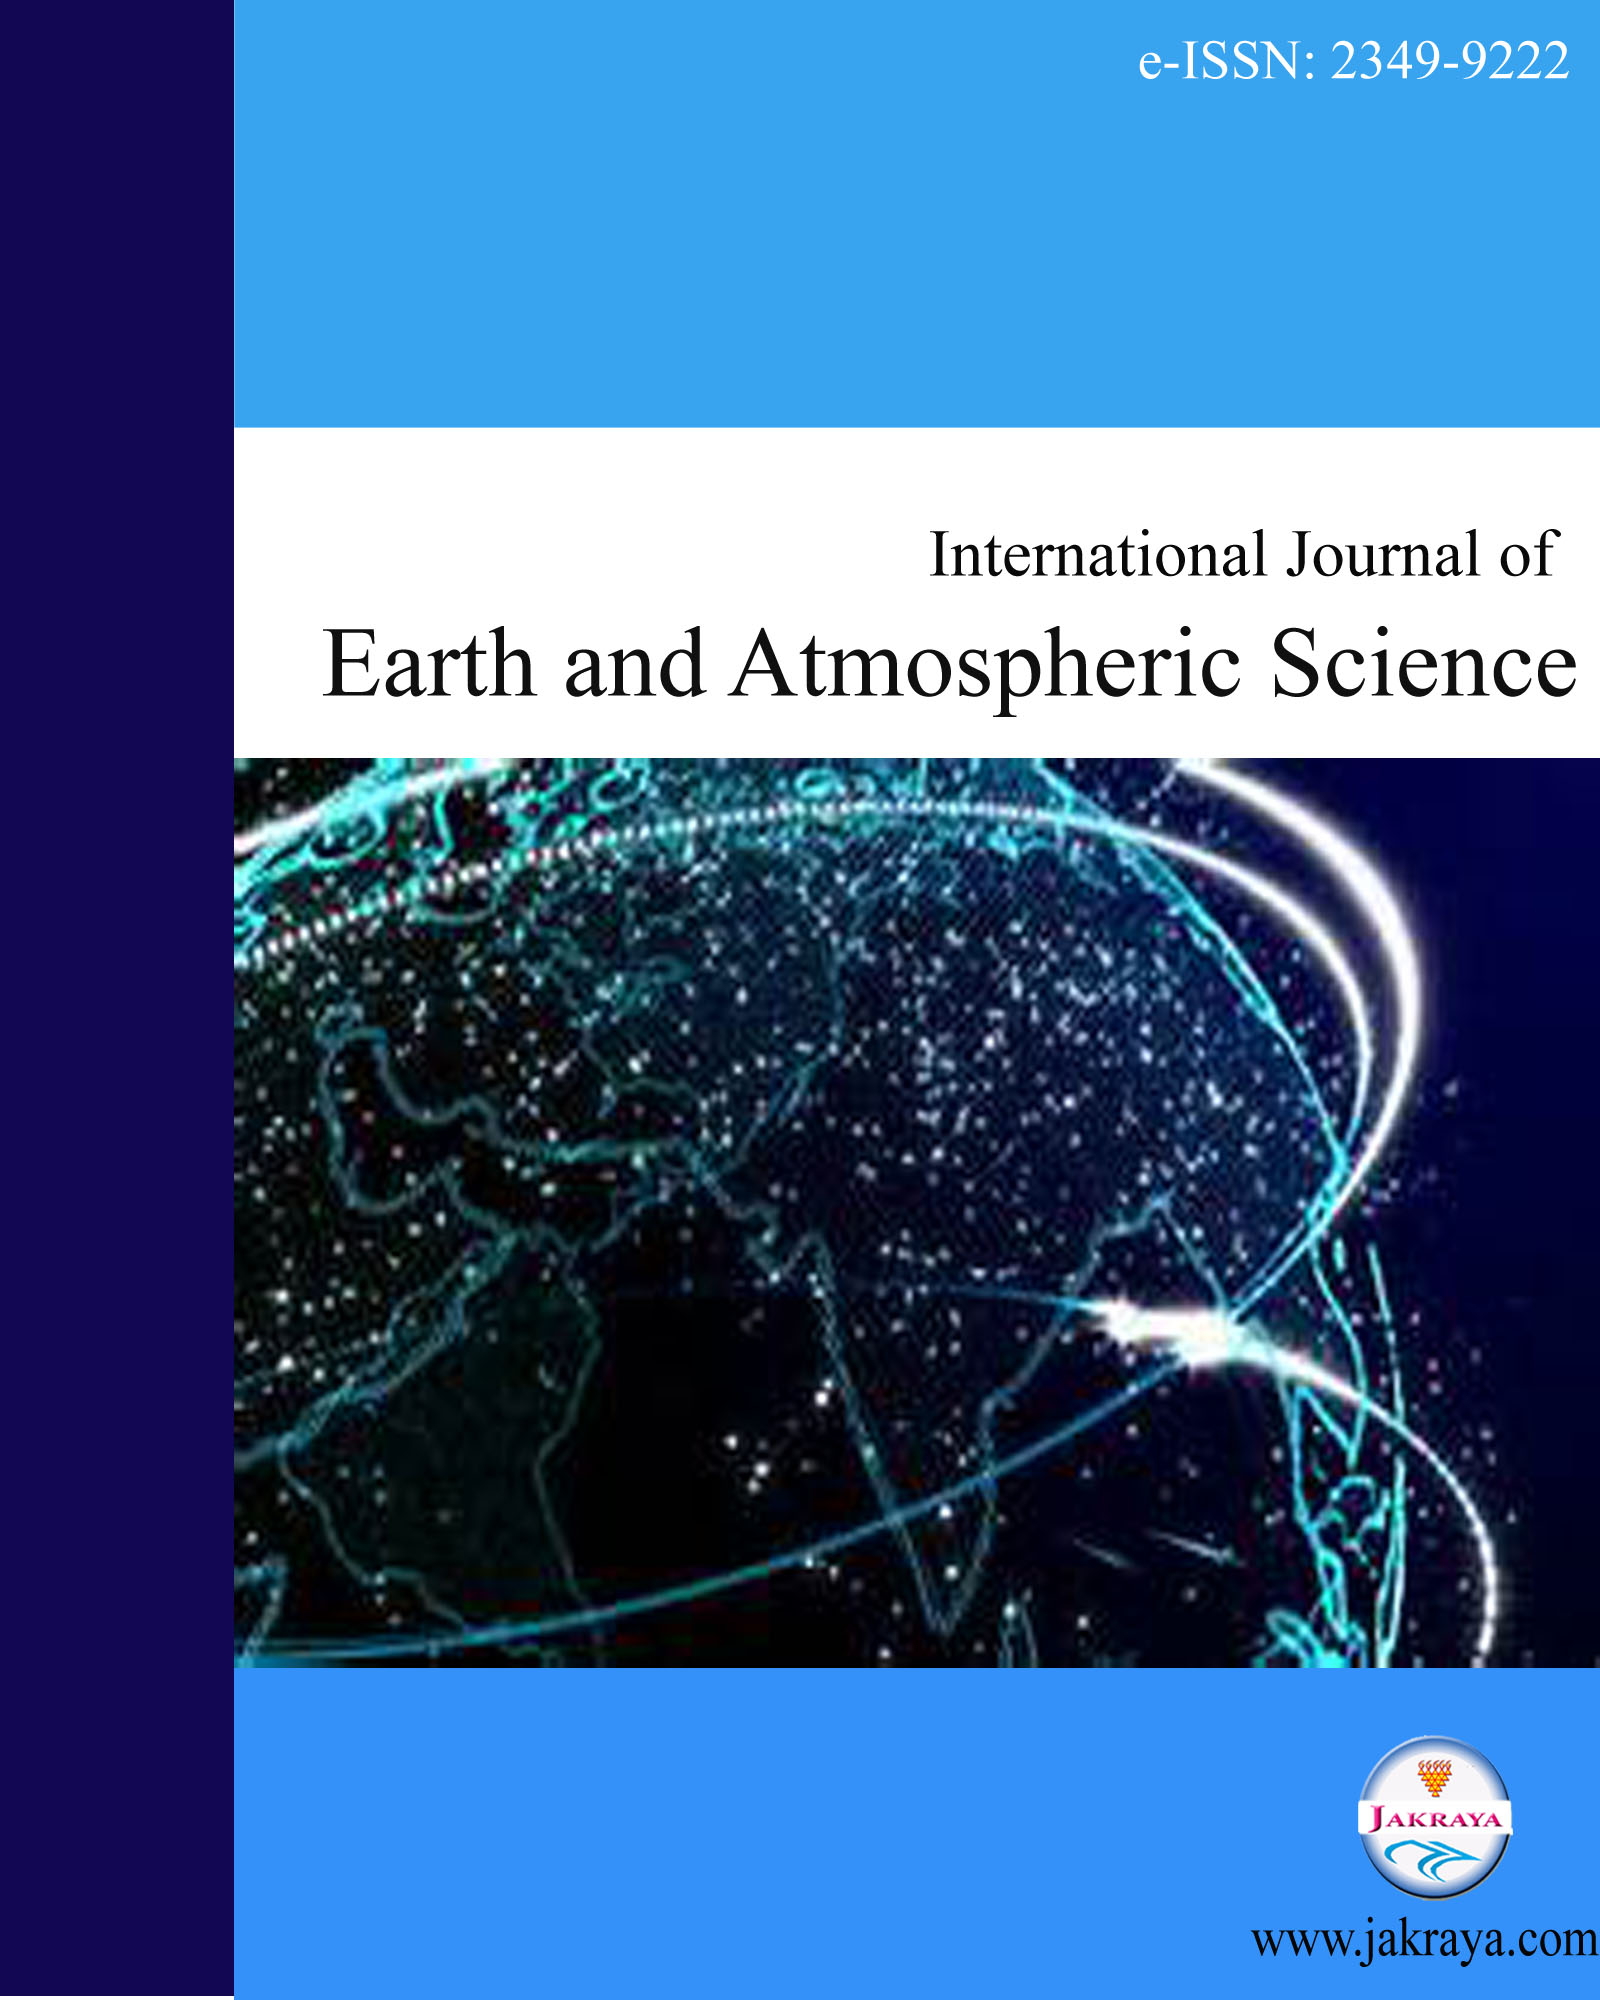 International Journal of Earth and Atmospheric Science